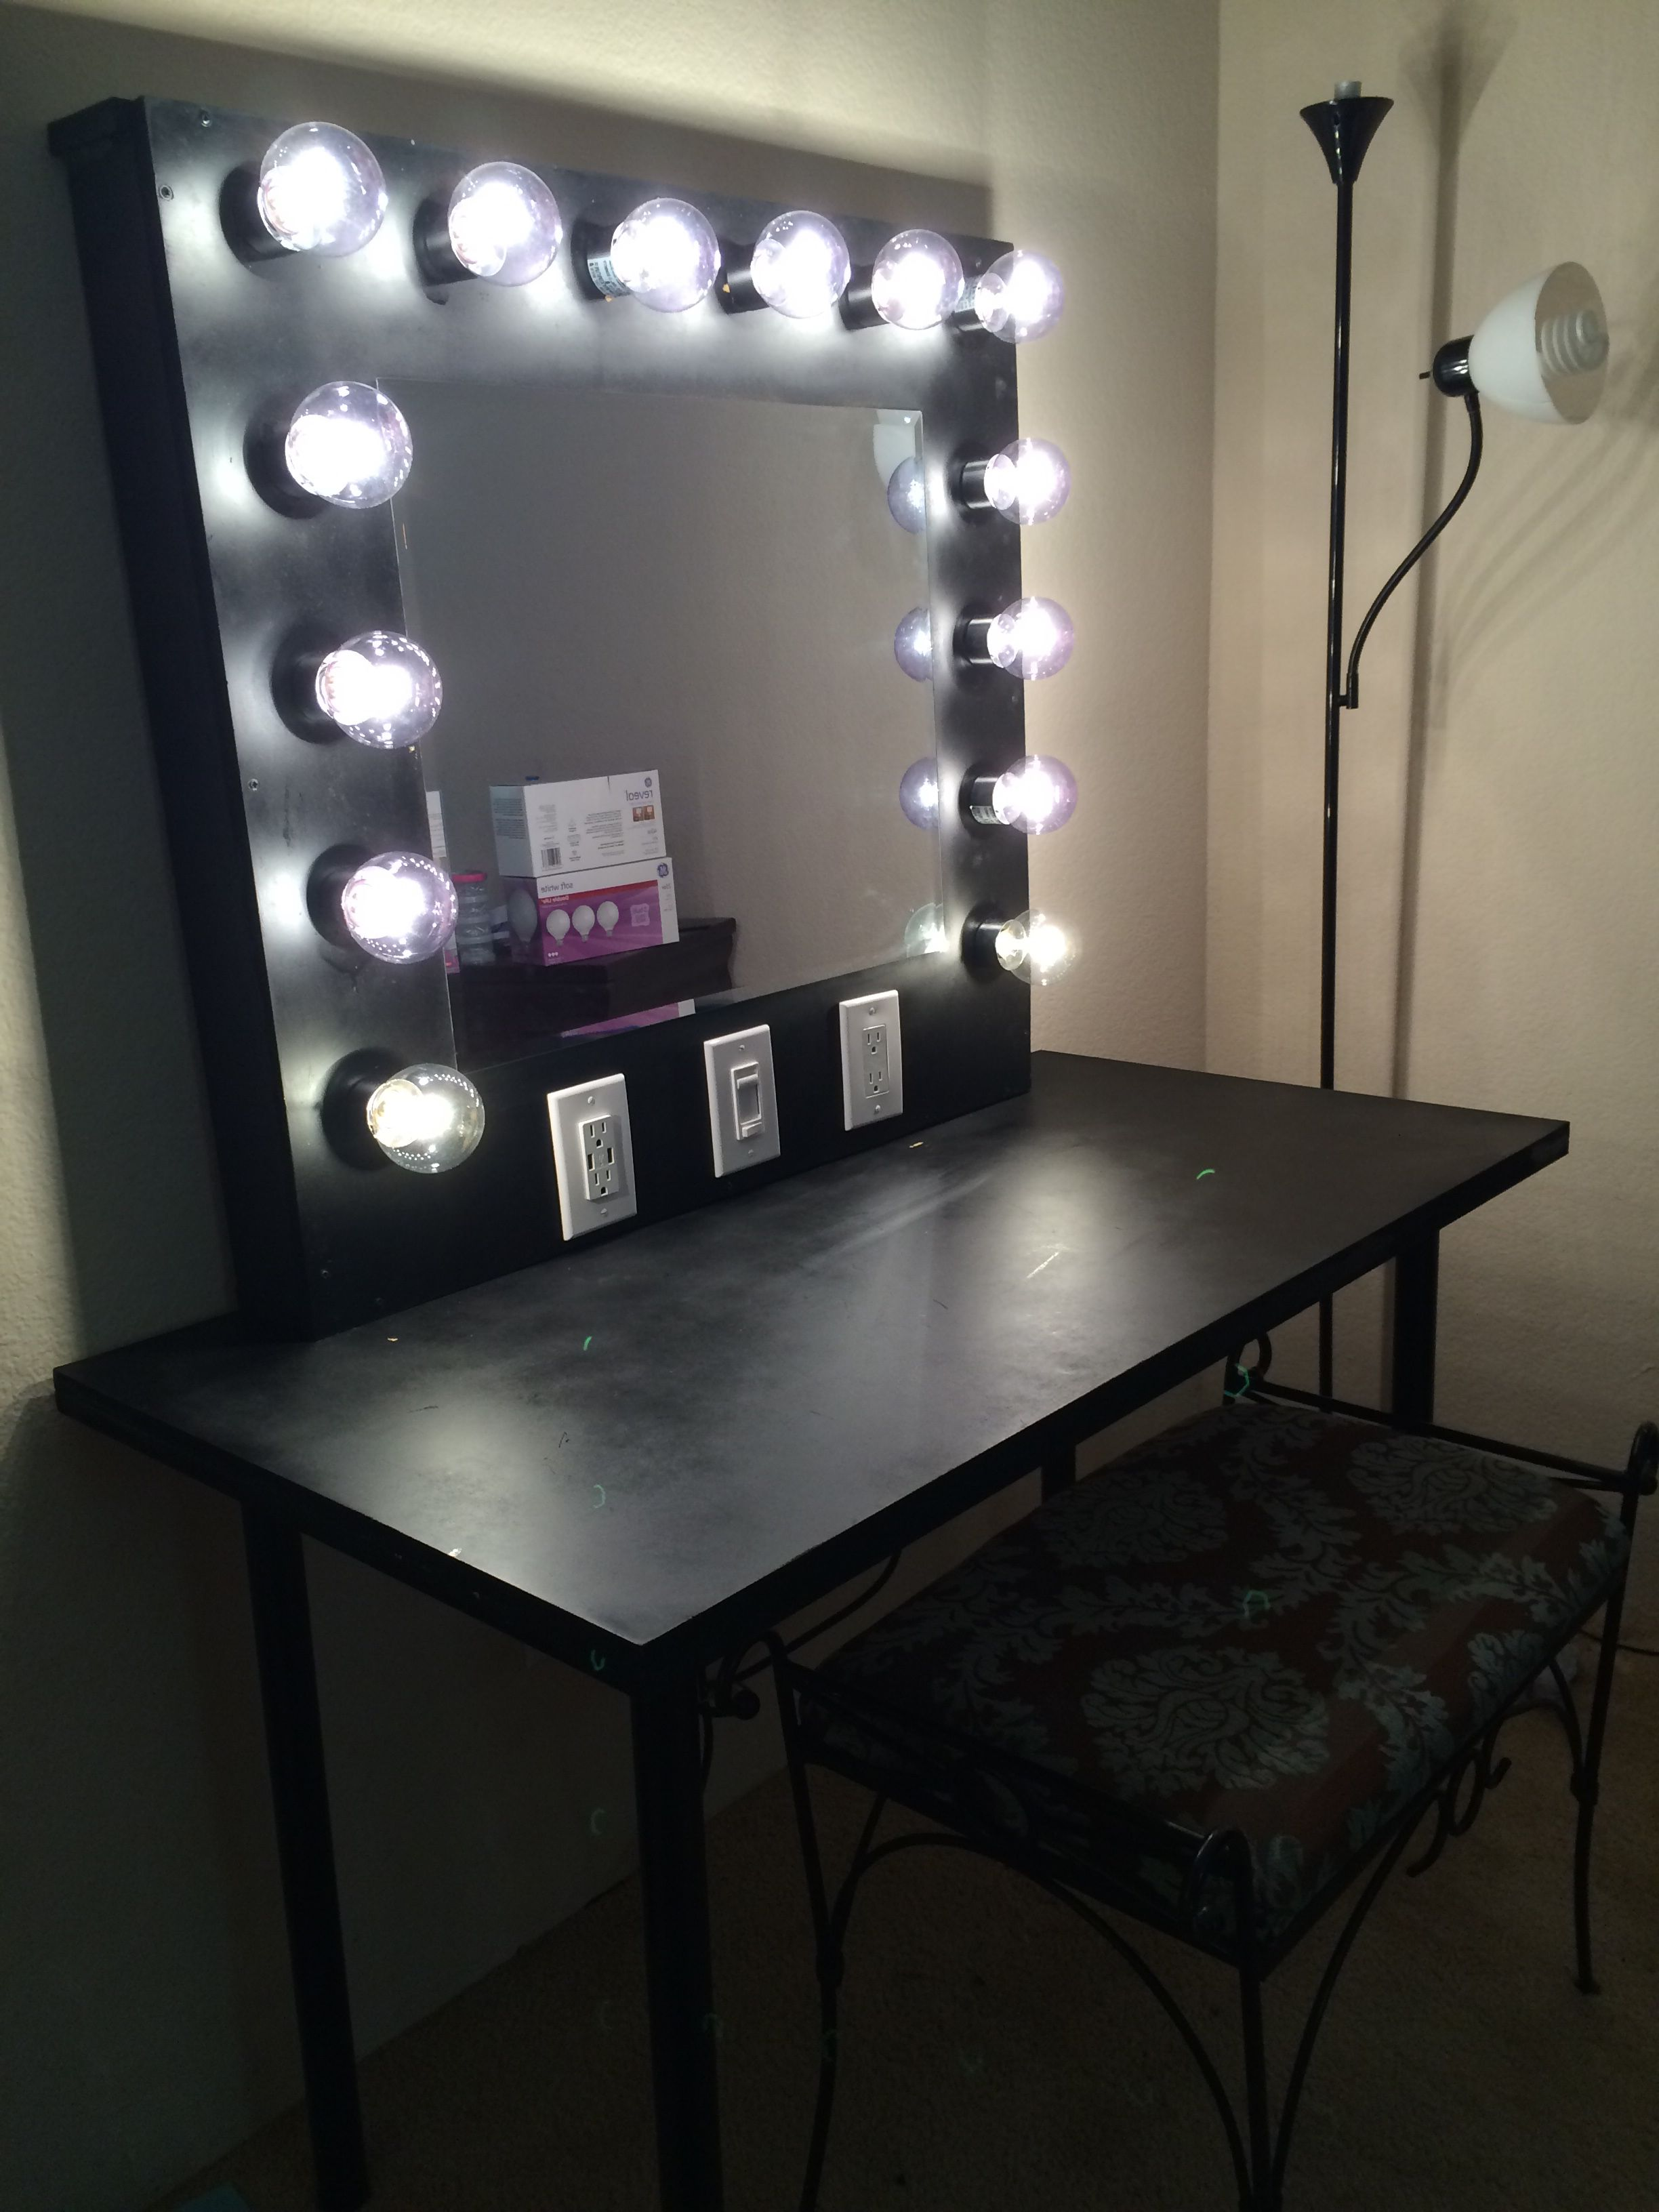 How To Make A Vanity Mirror With Lights Alluring 17 Diy Vanity Mirror Ideas To Make Your Room More Beautiful